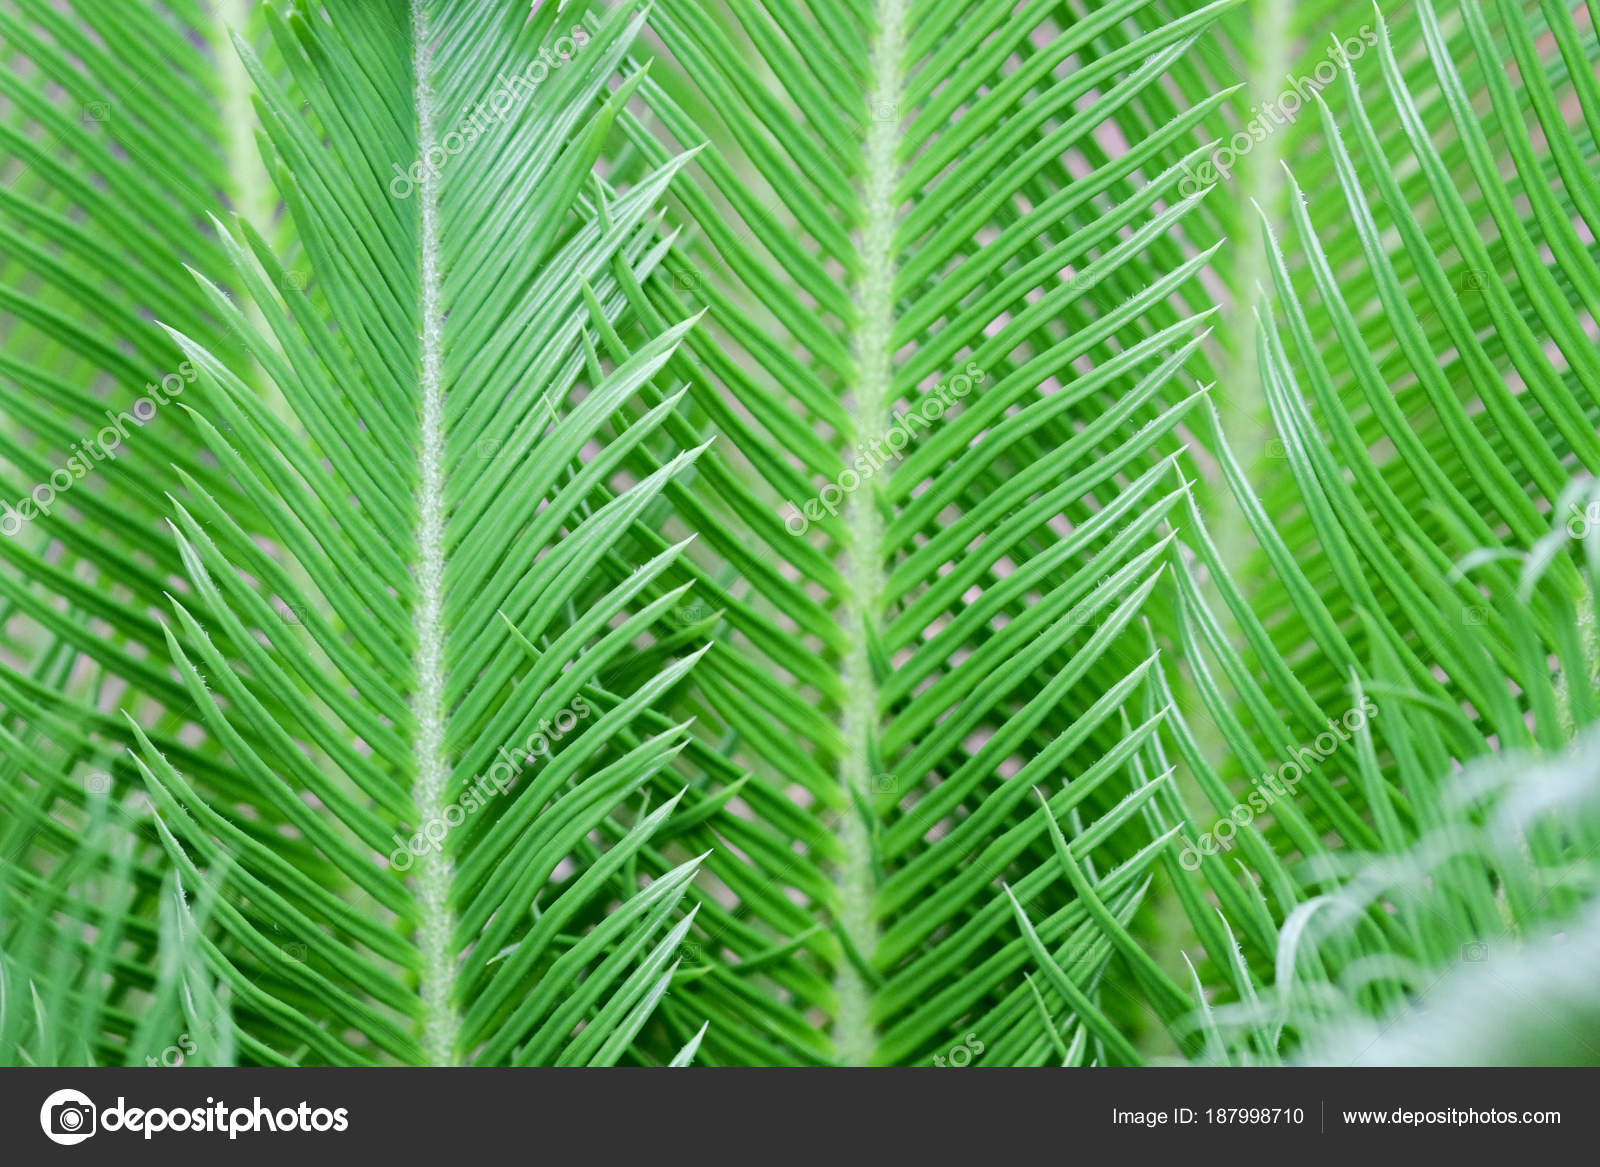 Wallpapers Greenery Nature Hd Natural Green Plants